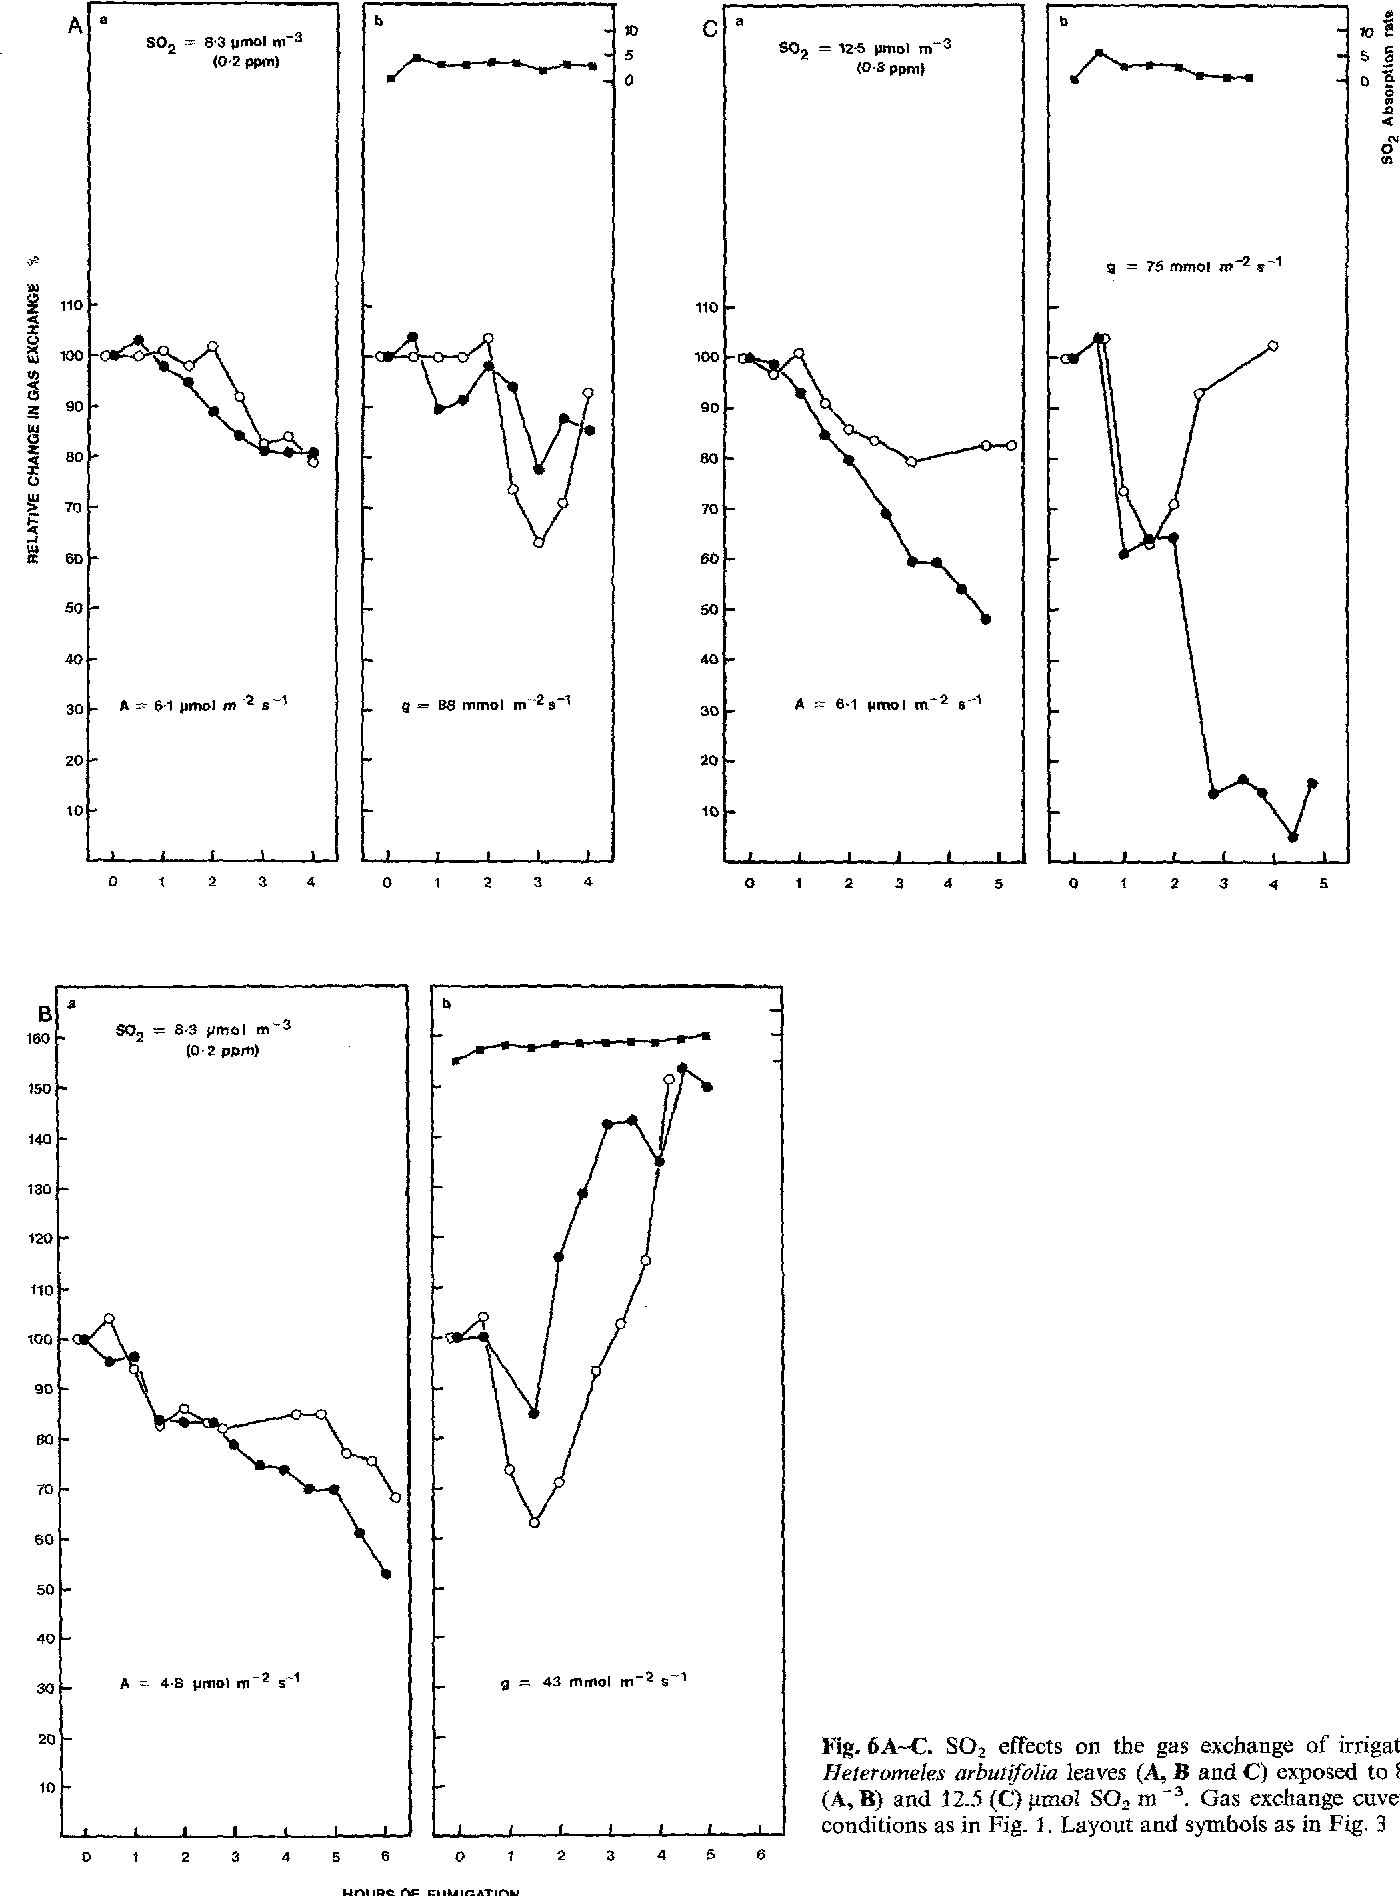 Fig, 6A-C. SO2 effects on the gas exchange of irrigated Heteromeles arbut(folia leaves (A, B and C) exposed to 8.3 (A, B) and 12.5 ((2) ~mol SO2 m -3 Gas exchange cuvette conditions as in Fig. 1. Layout and symbols as in Fig. 3